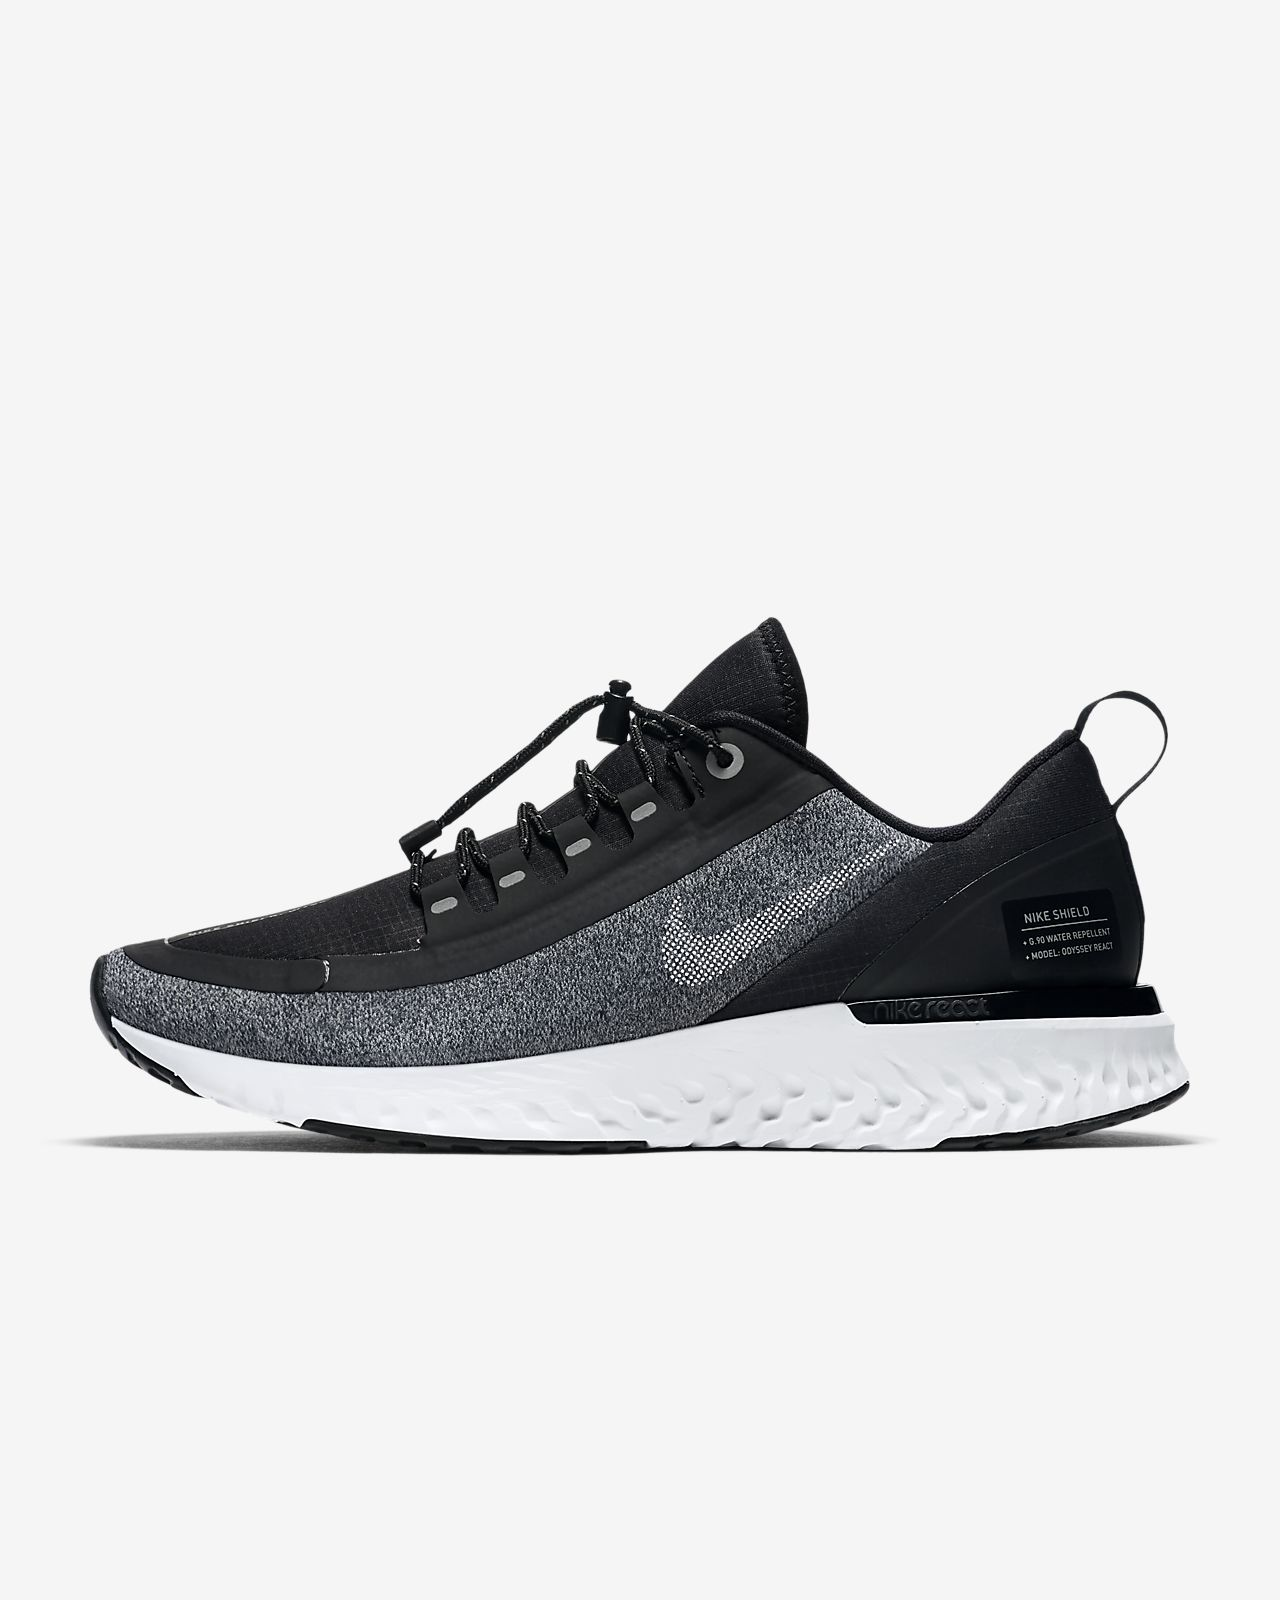 React Running Repellent Calzado Para De Shield Mujer Water Nike Odyssey qUHgOwfxH